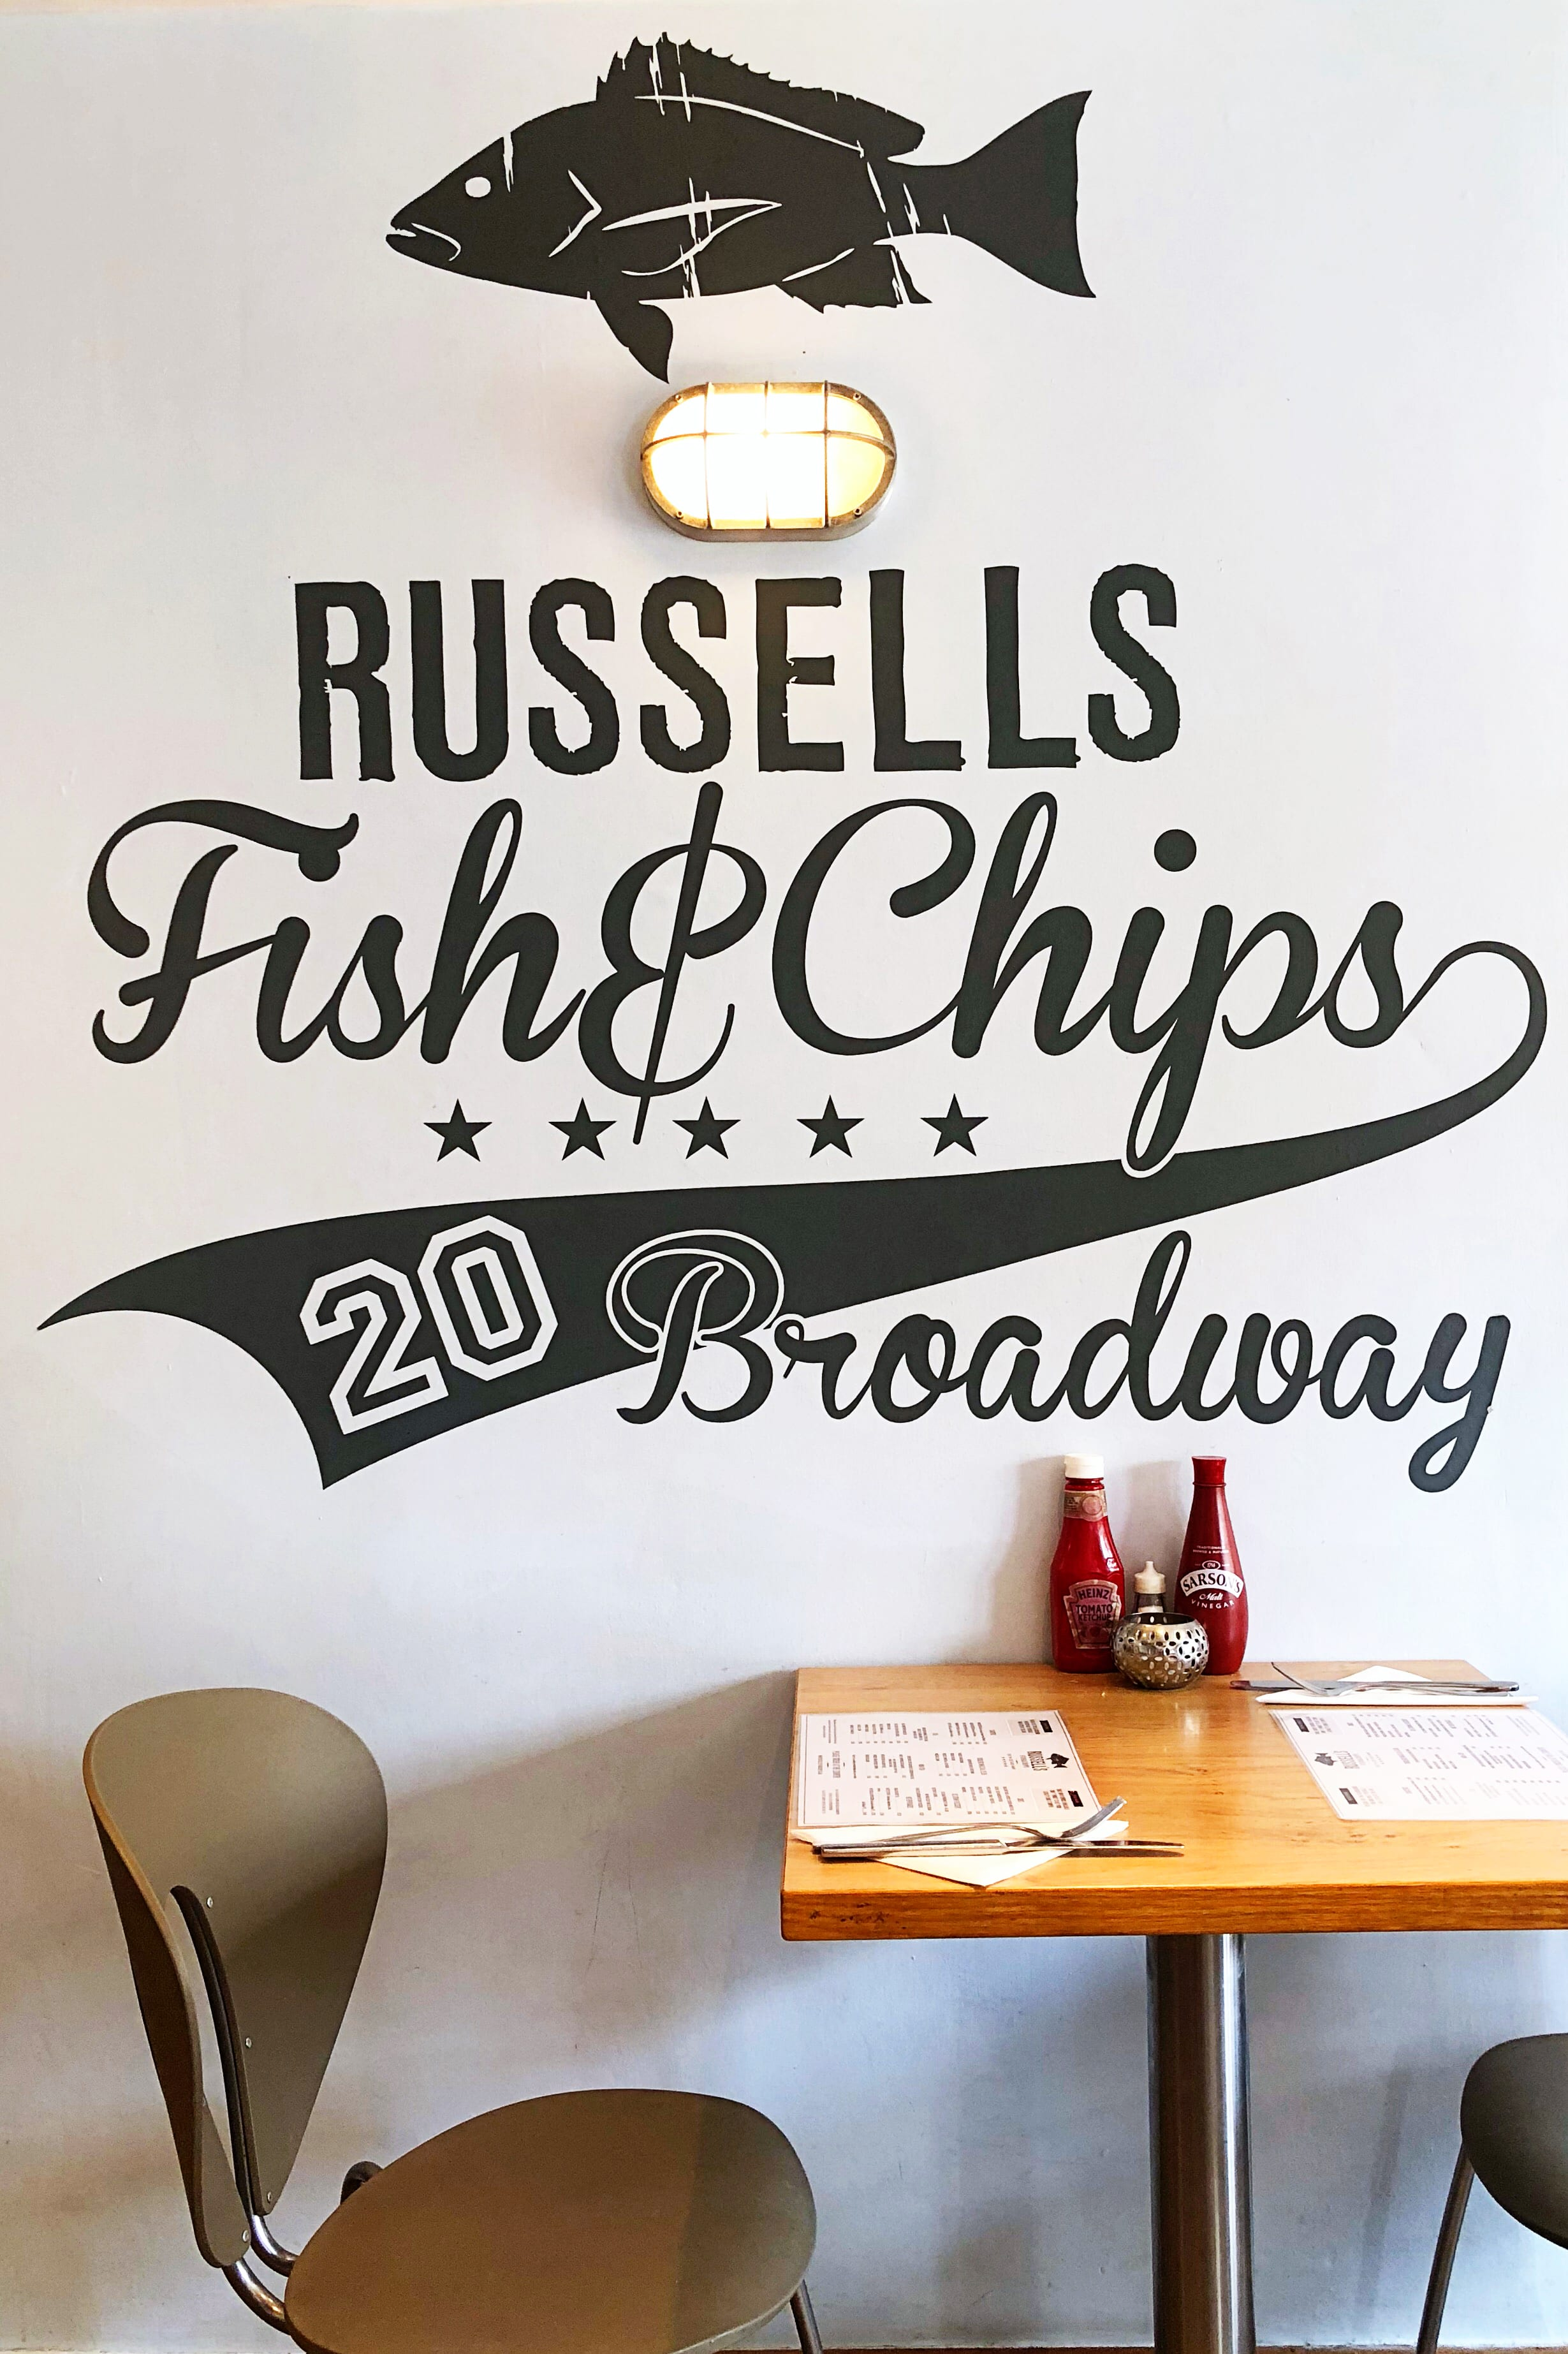 Russells fish and chips